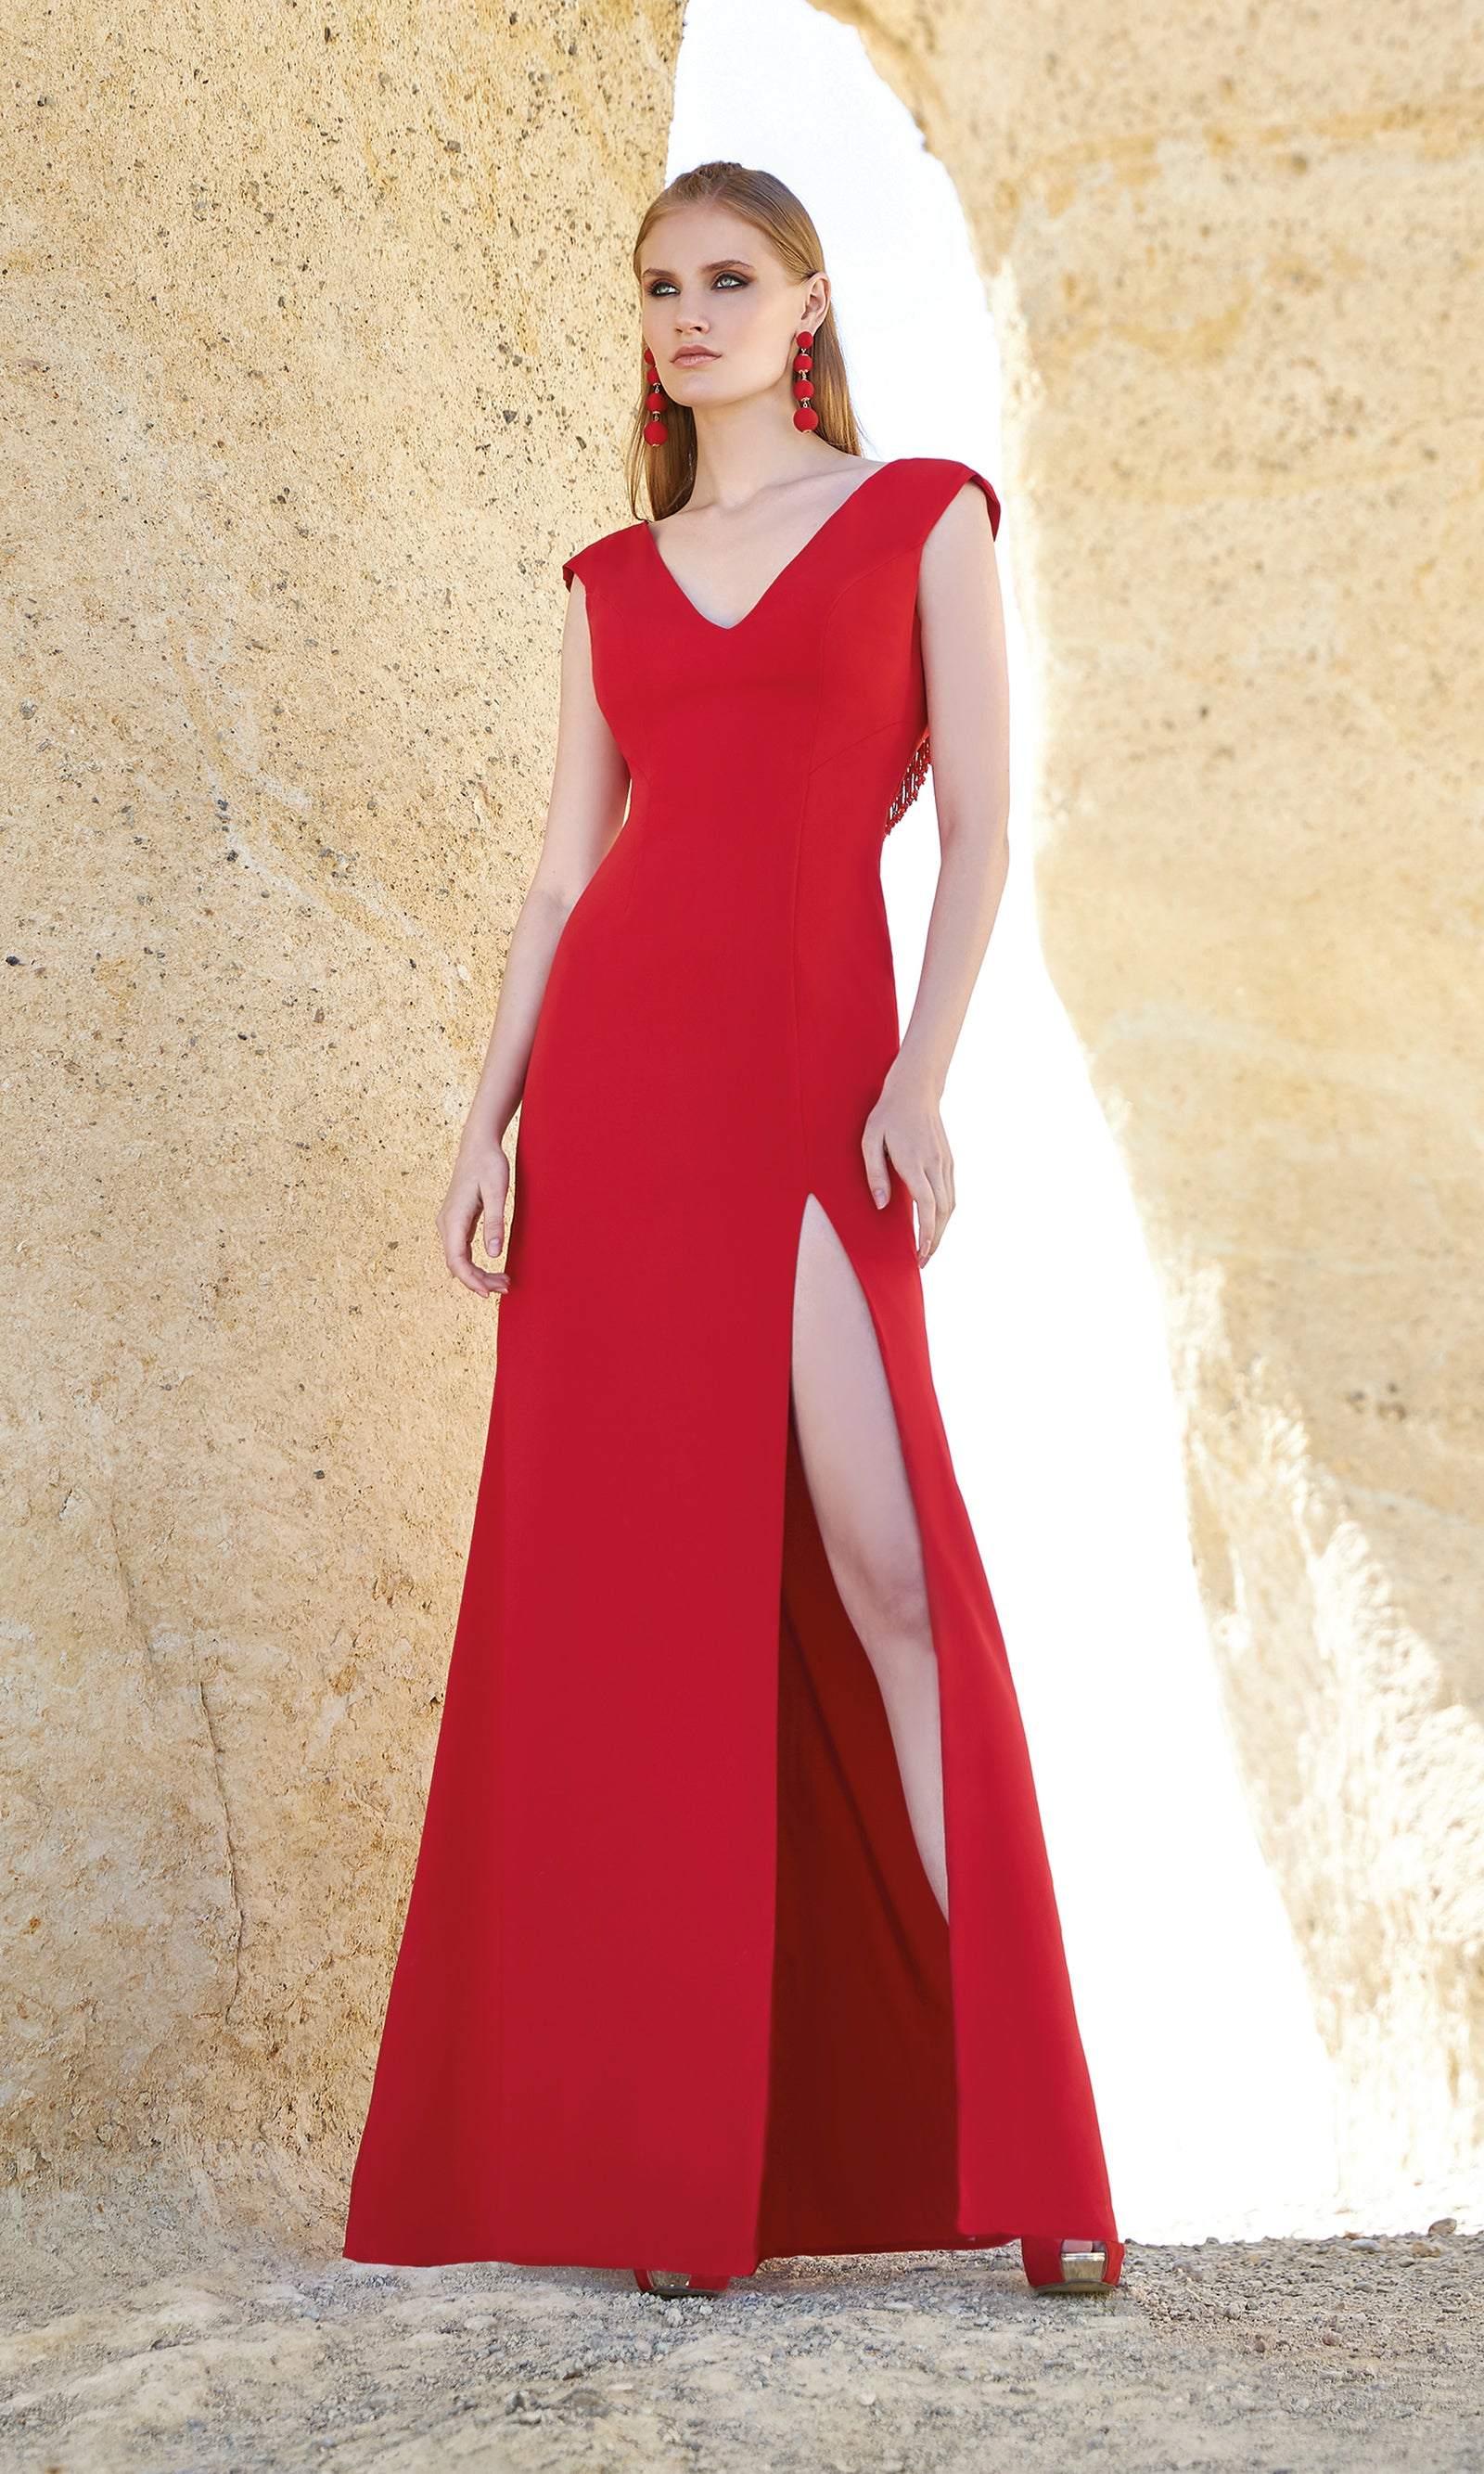 1200140A Red Sonia Pena Low Back Evening Prom Dress - Fab Frocks